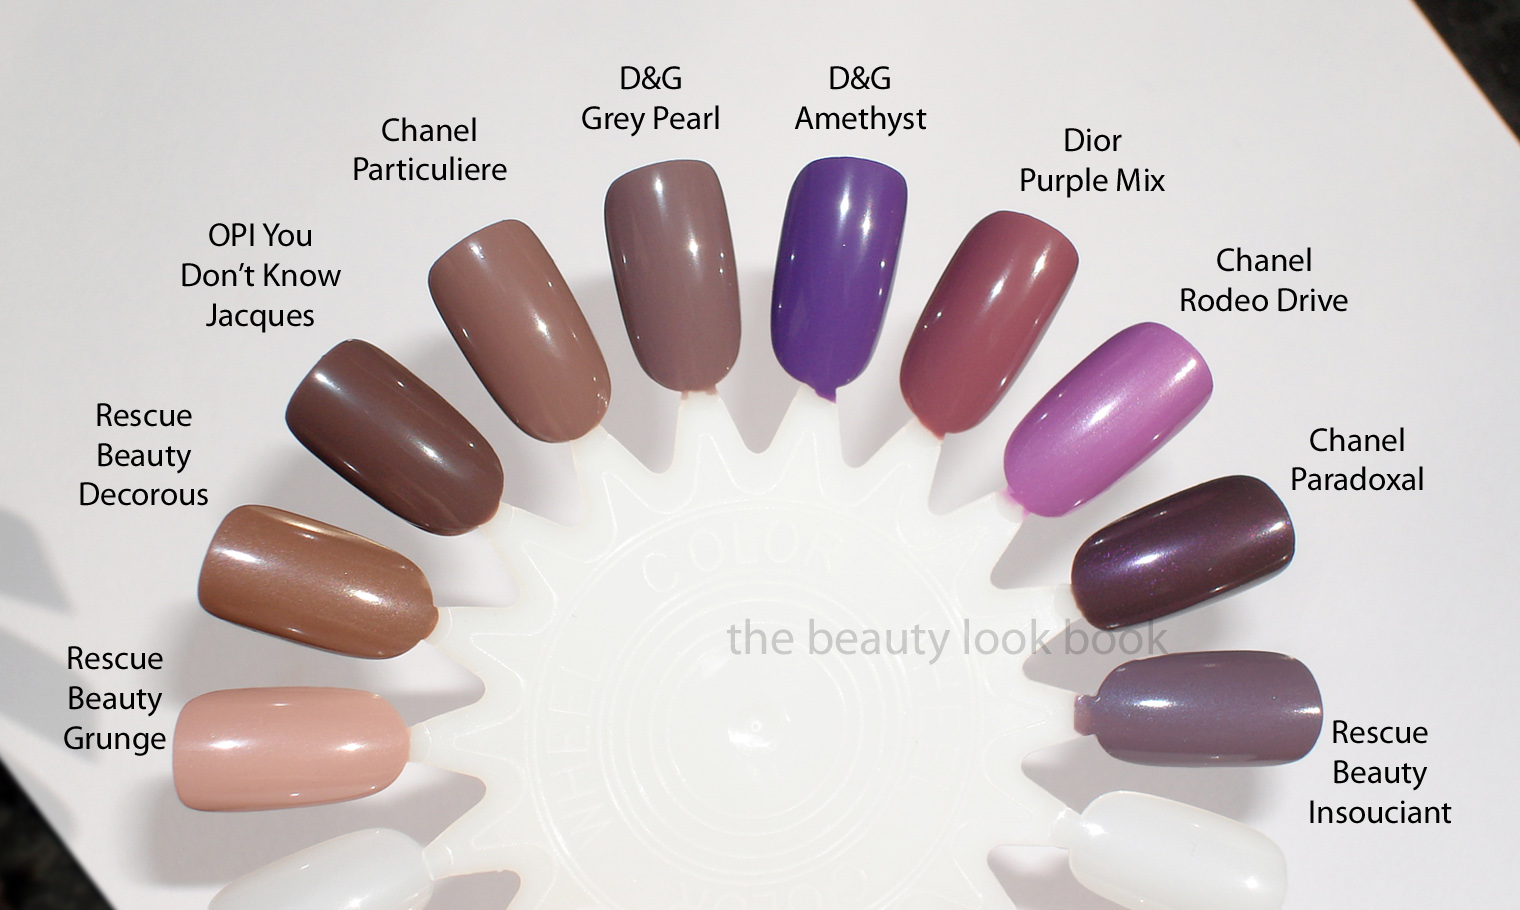 Dolce & Gabbana Grey Pearl and Amethyst Nail Lacquer Comparisons ...